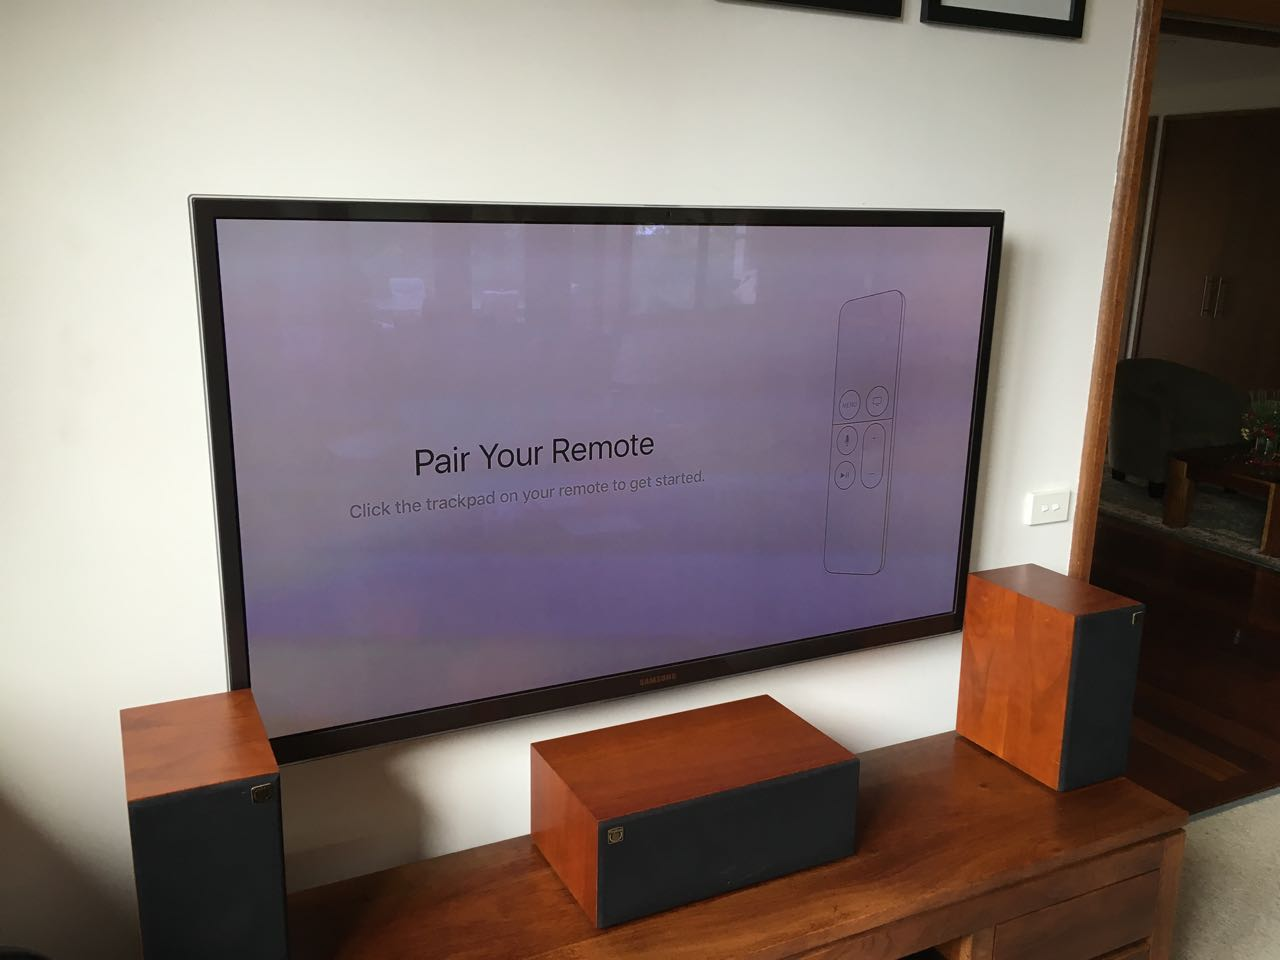 pairing apple tv with iOS